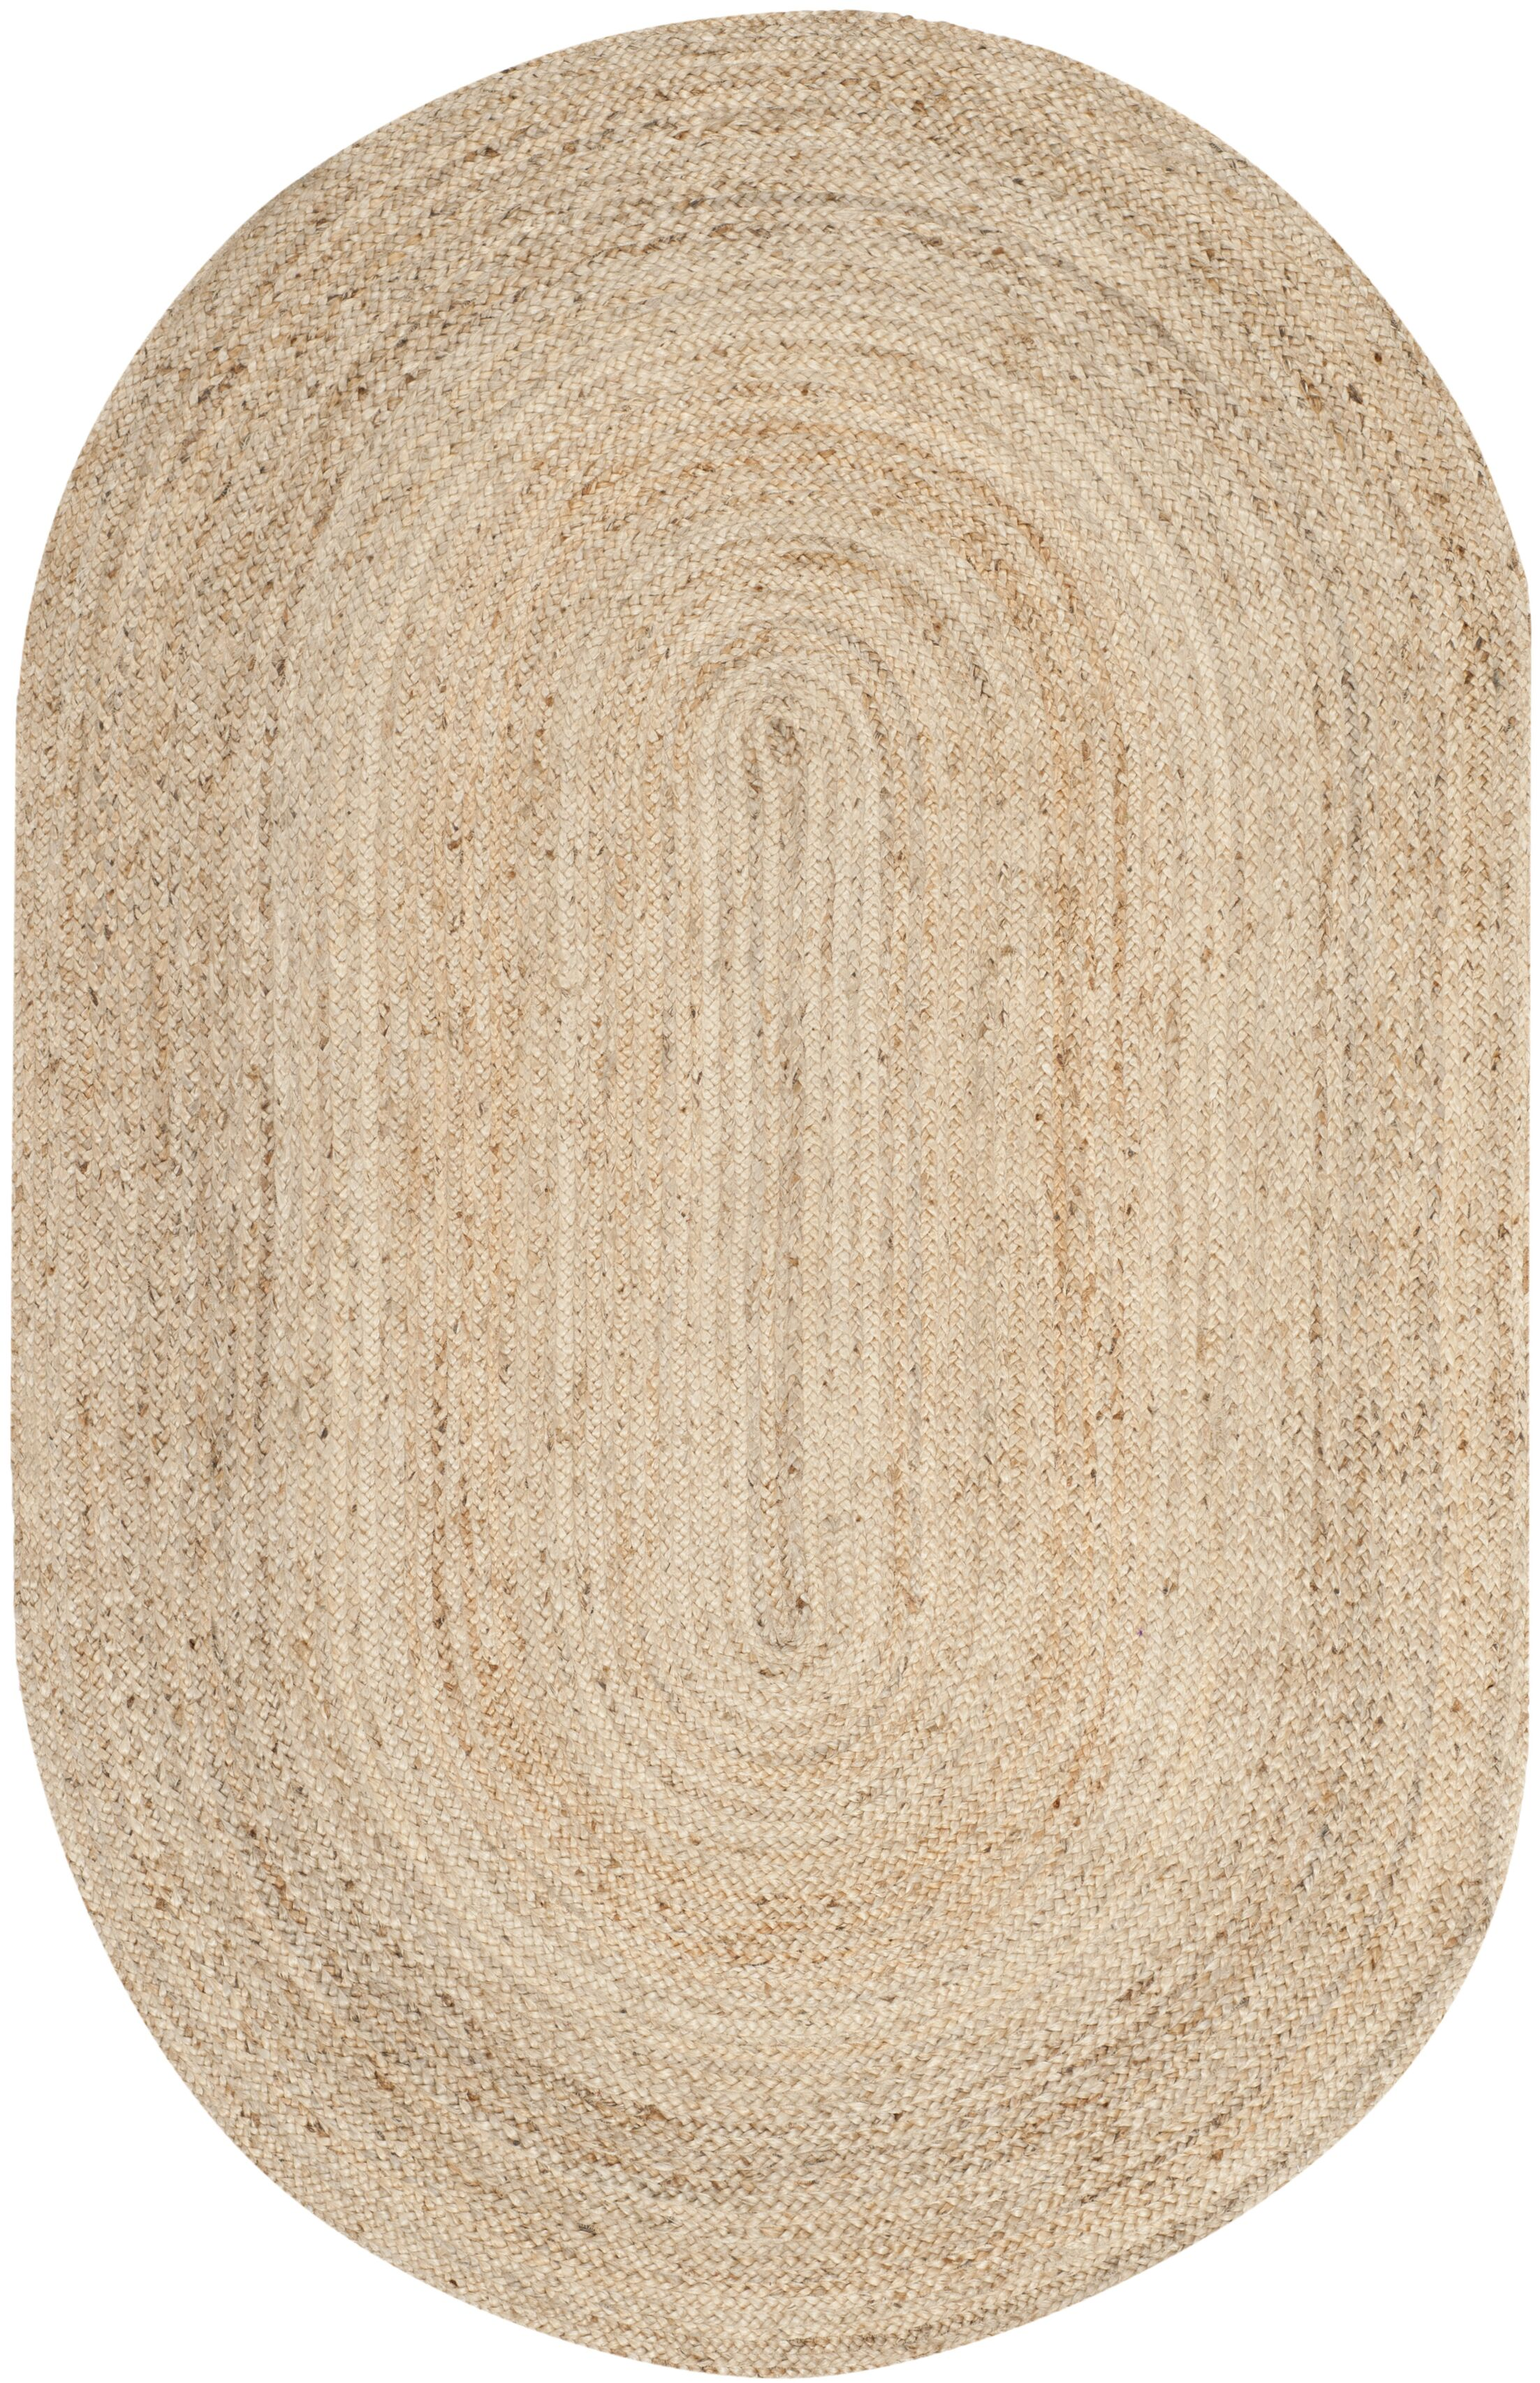 Chatham Hand-Woven Wool Light Tan Area Rug Rug Size: Oval 6' x 9'